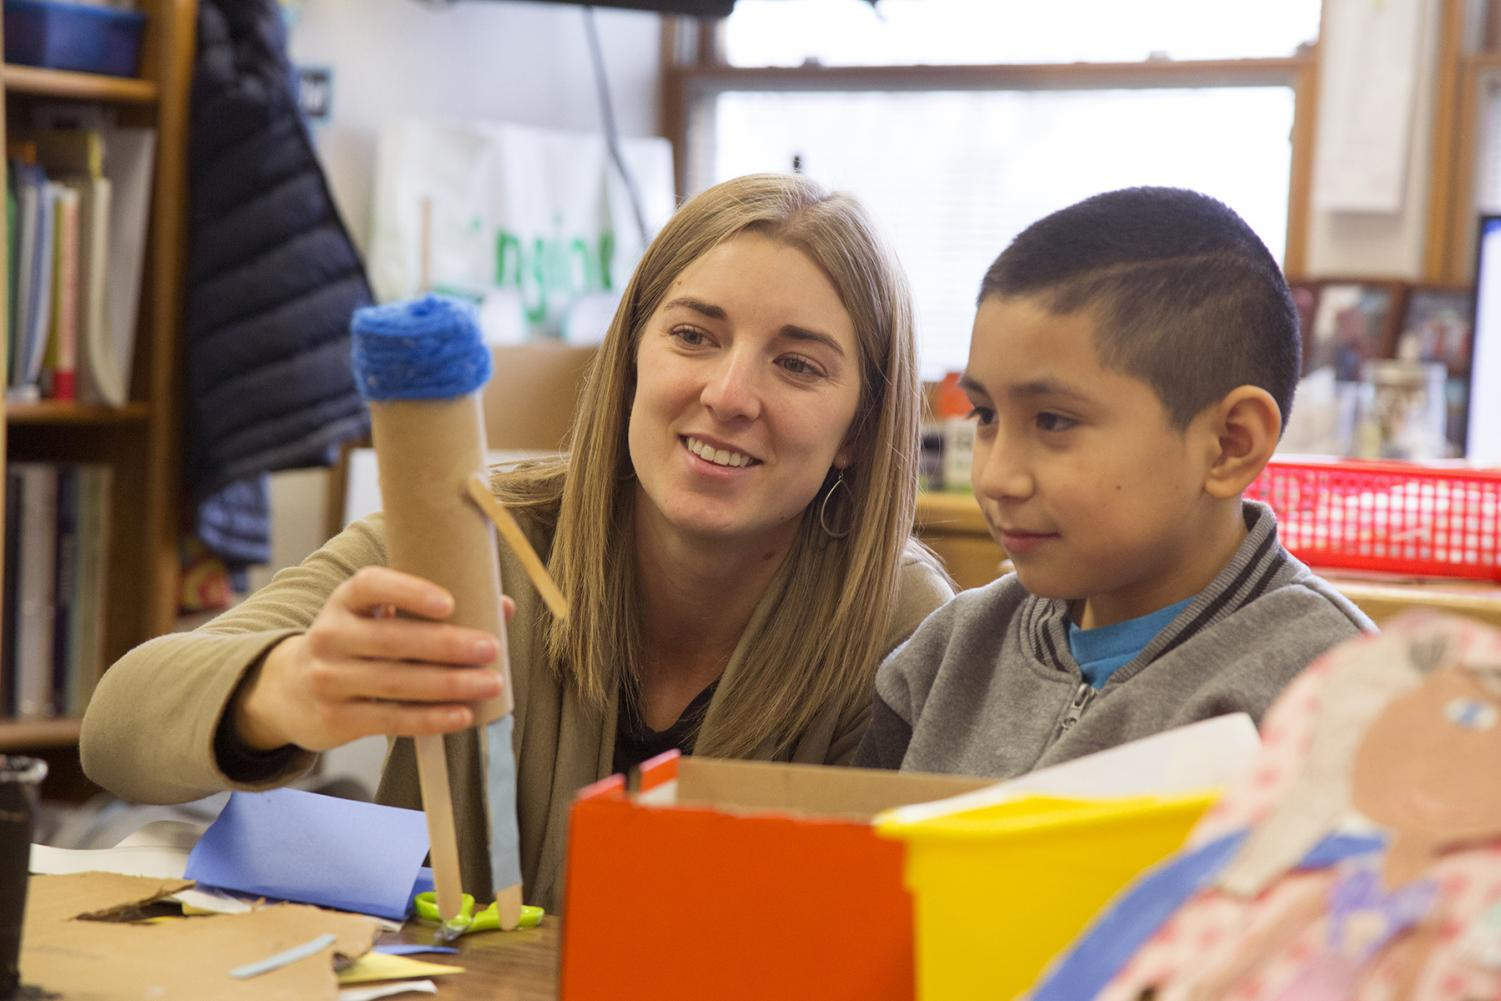 Camille Jones, a CWU alumna, currently teaches STEAM (Science, Technology, Engineering, Arts and Math) courses at Pioneer Elementary School in Quincy, Washington.